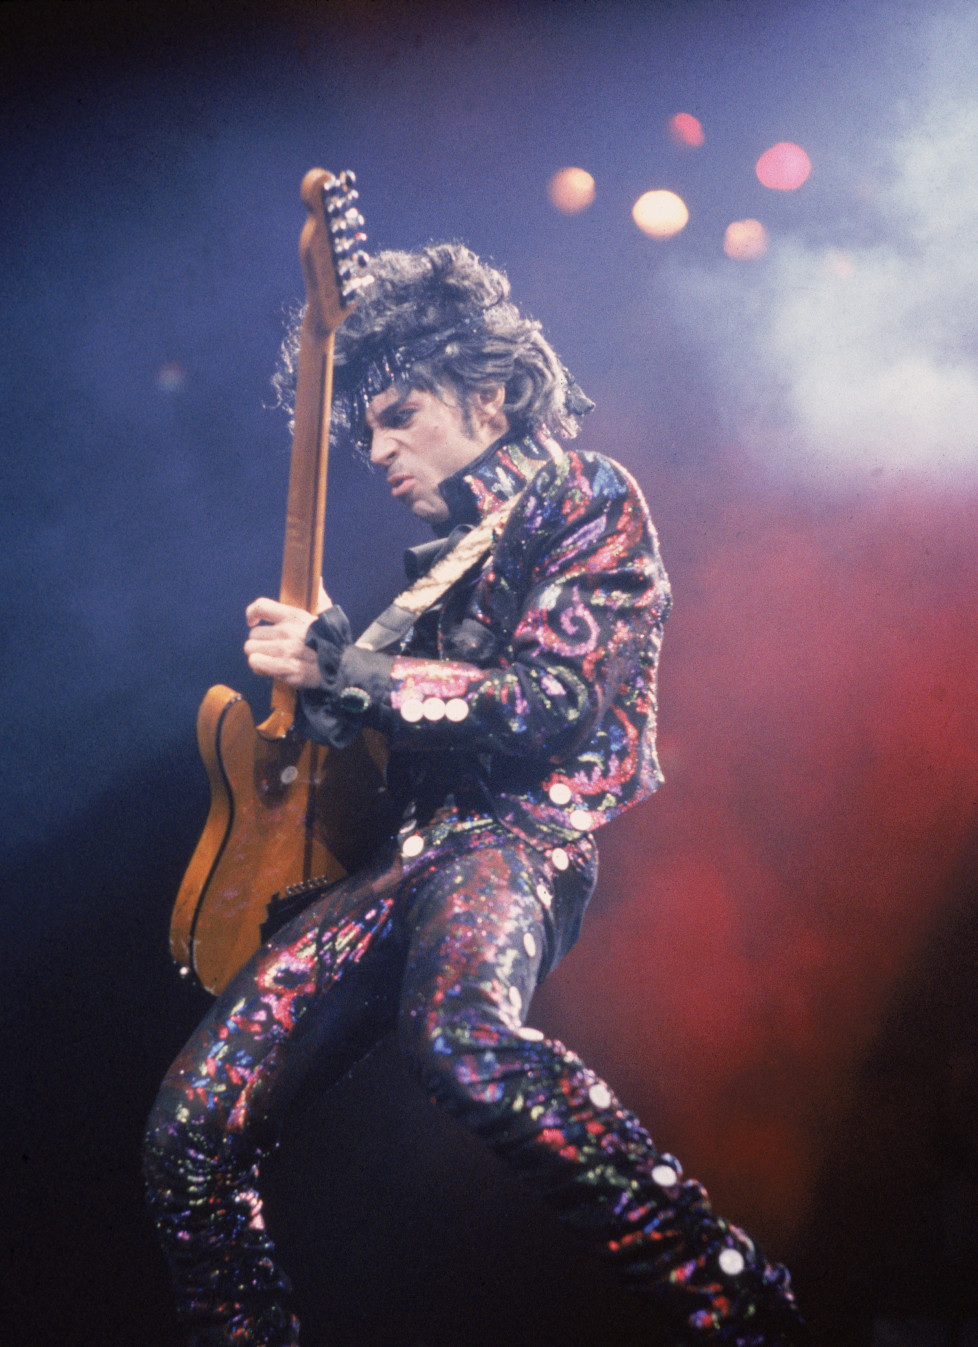 American rock singer and songwriter Prince plays guitar on stage during a concert, 1985. (Photo by Frank Micelotta/Getty Images)